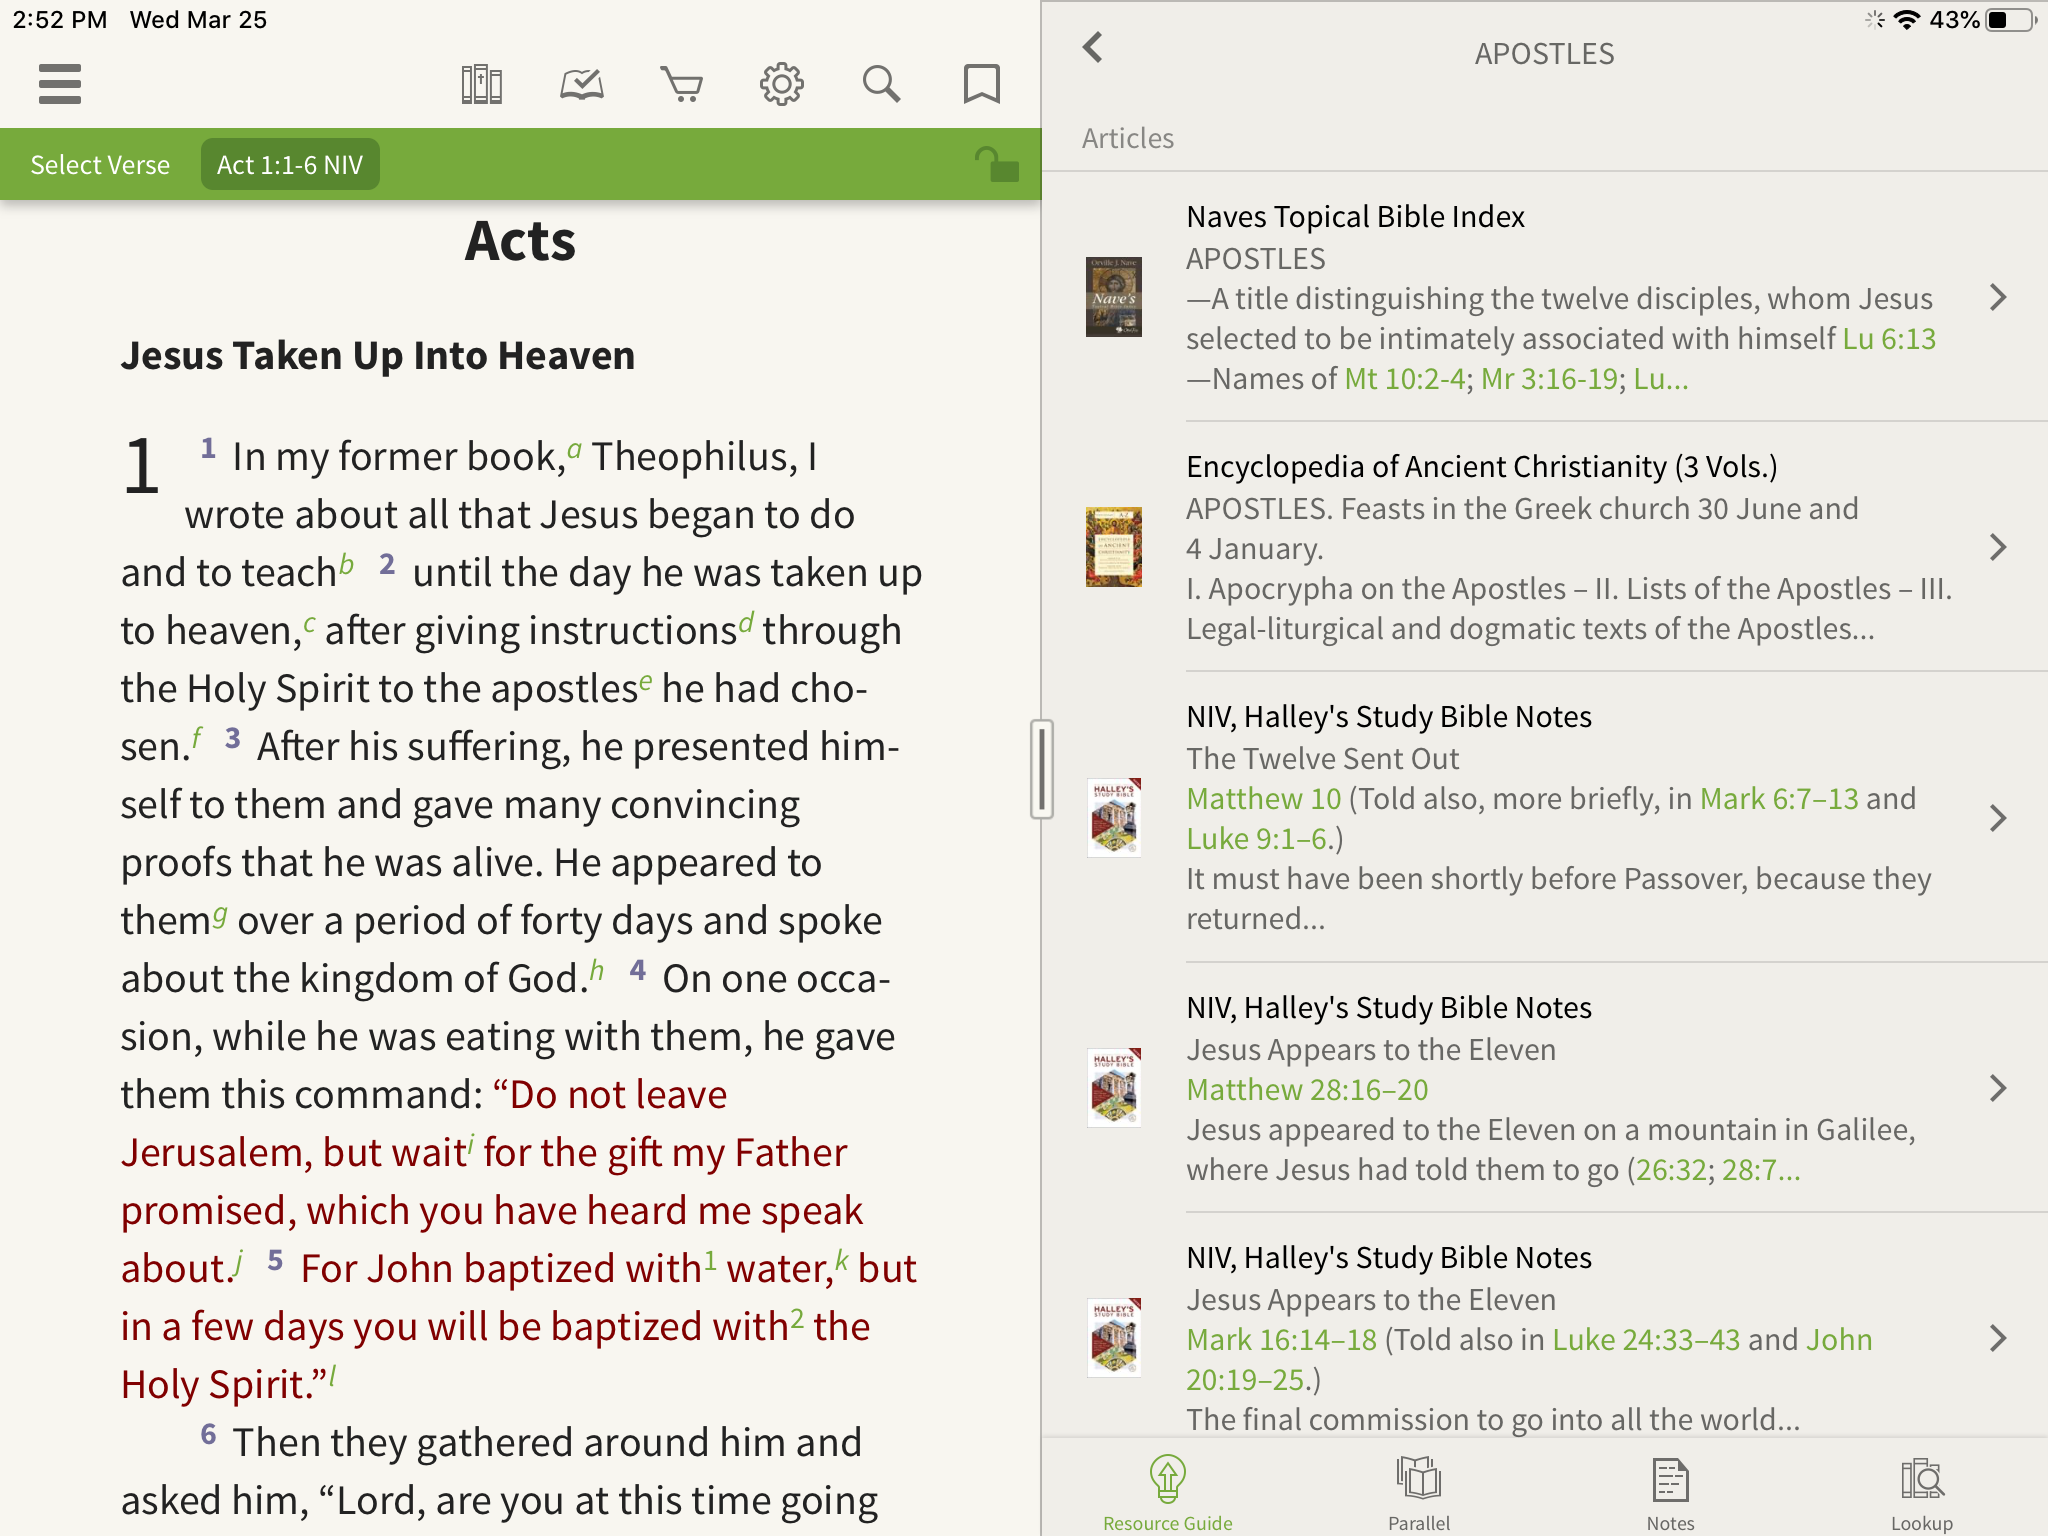 a list of articles on Apostles